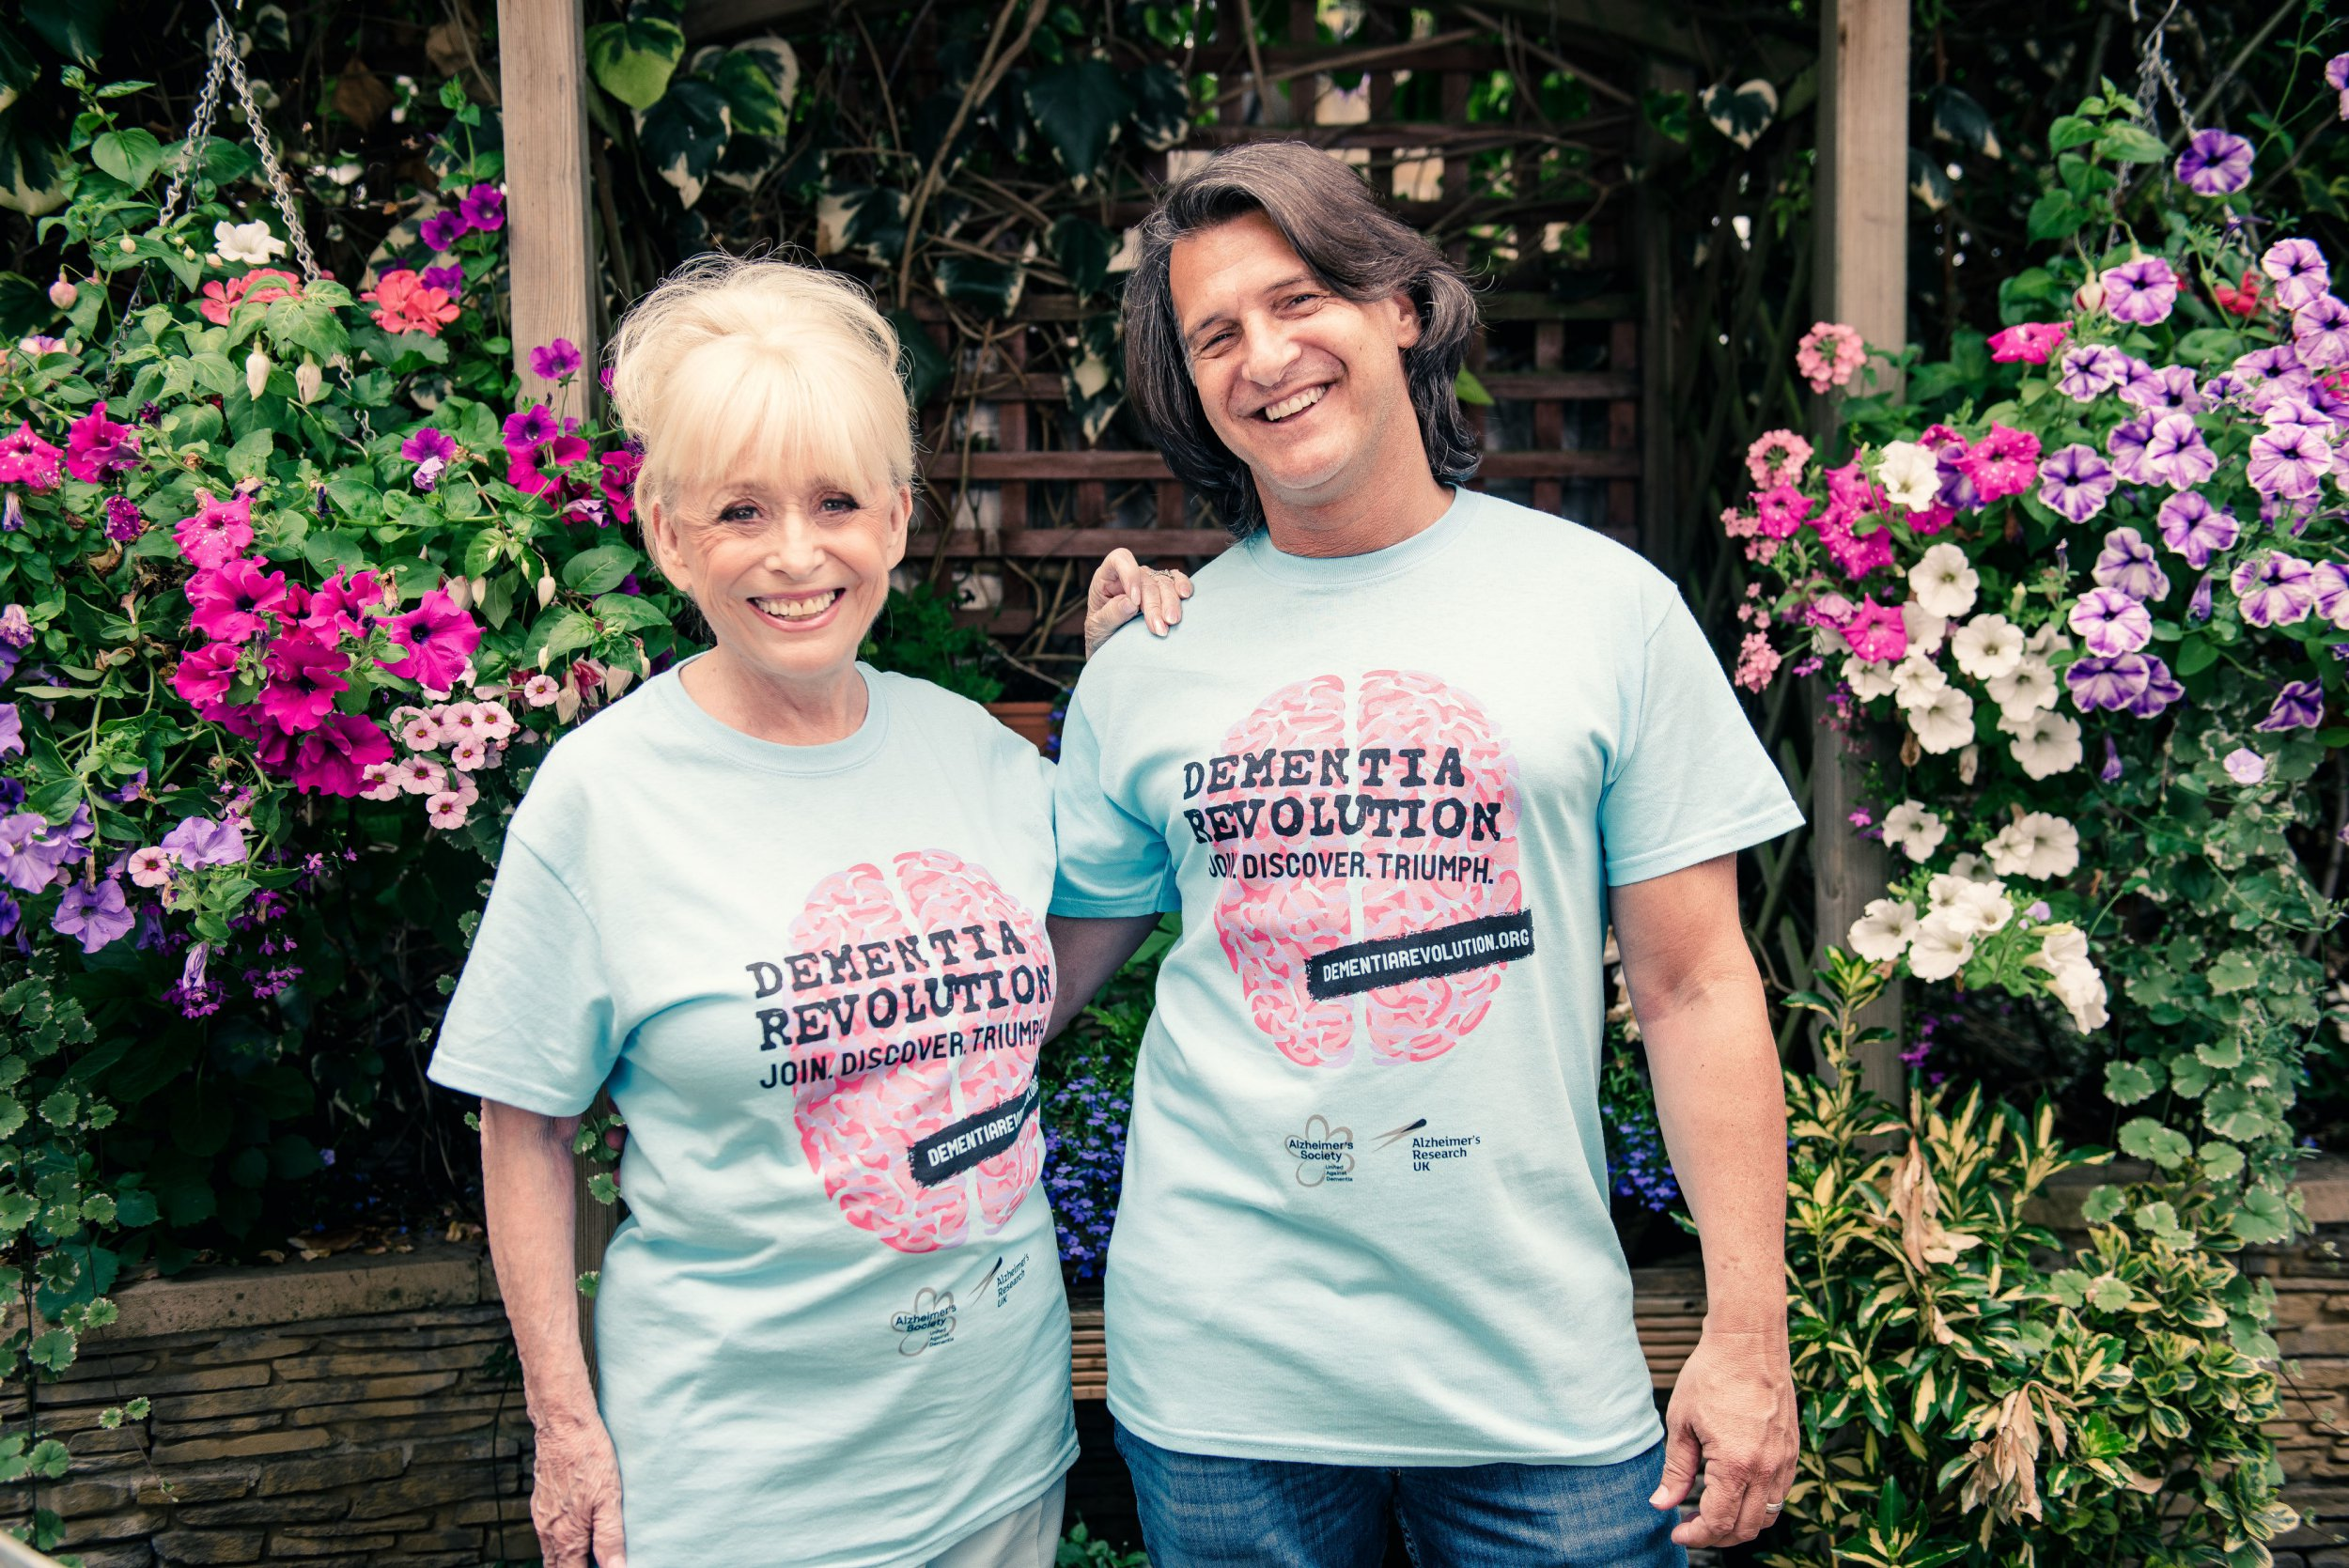 Barbara Windsor thankful for EastEnders pals' support ahead of London marathon